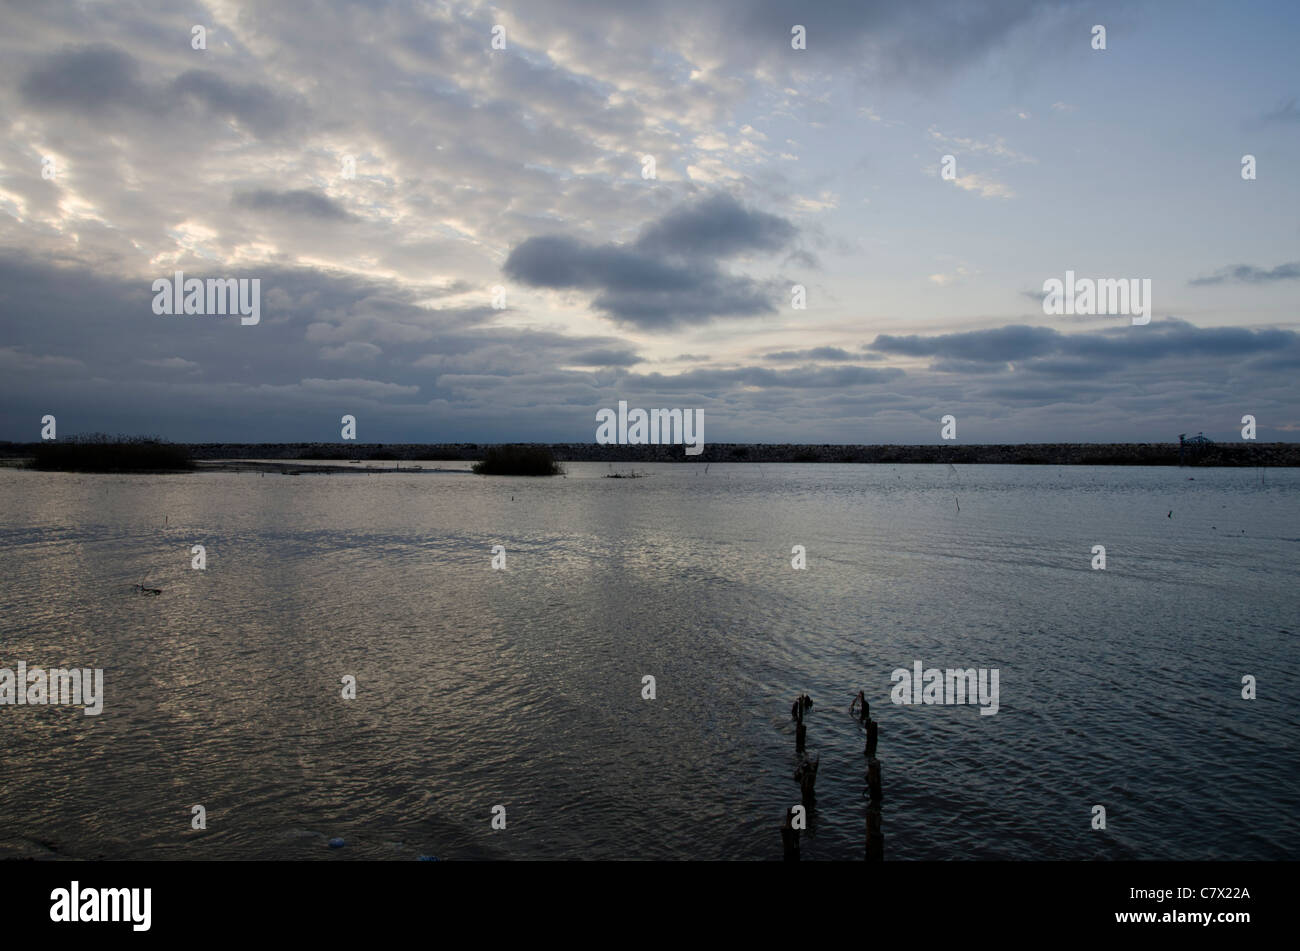 cloudy sunset at Caspian sea shore with  a broken wharf - Stock Image